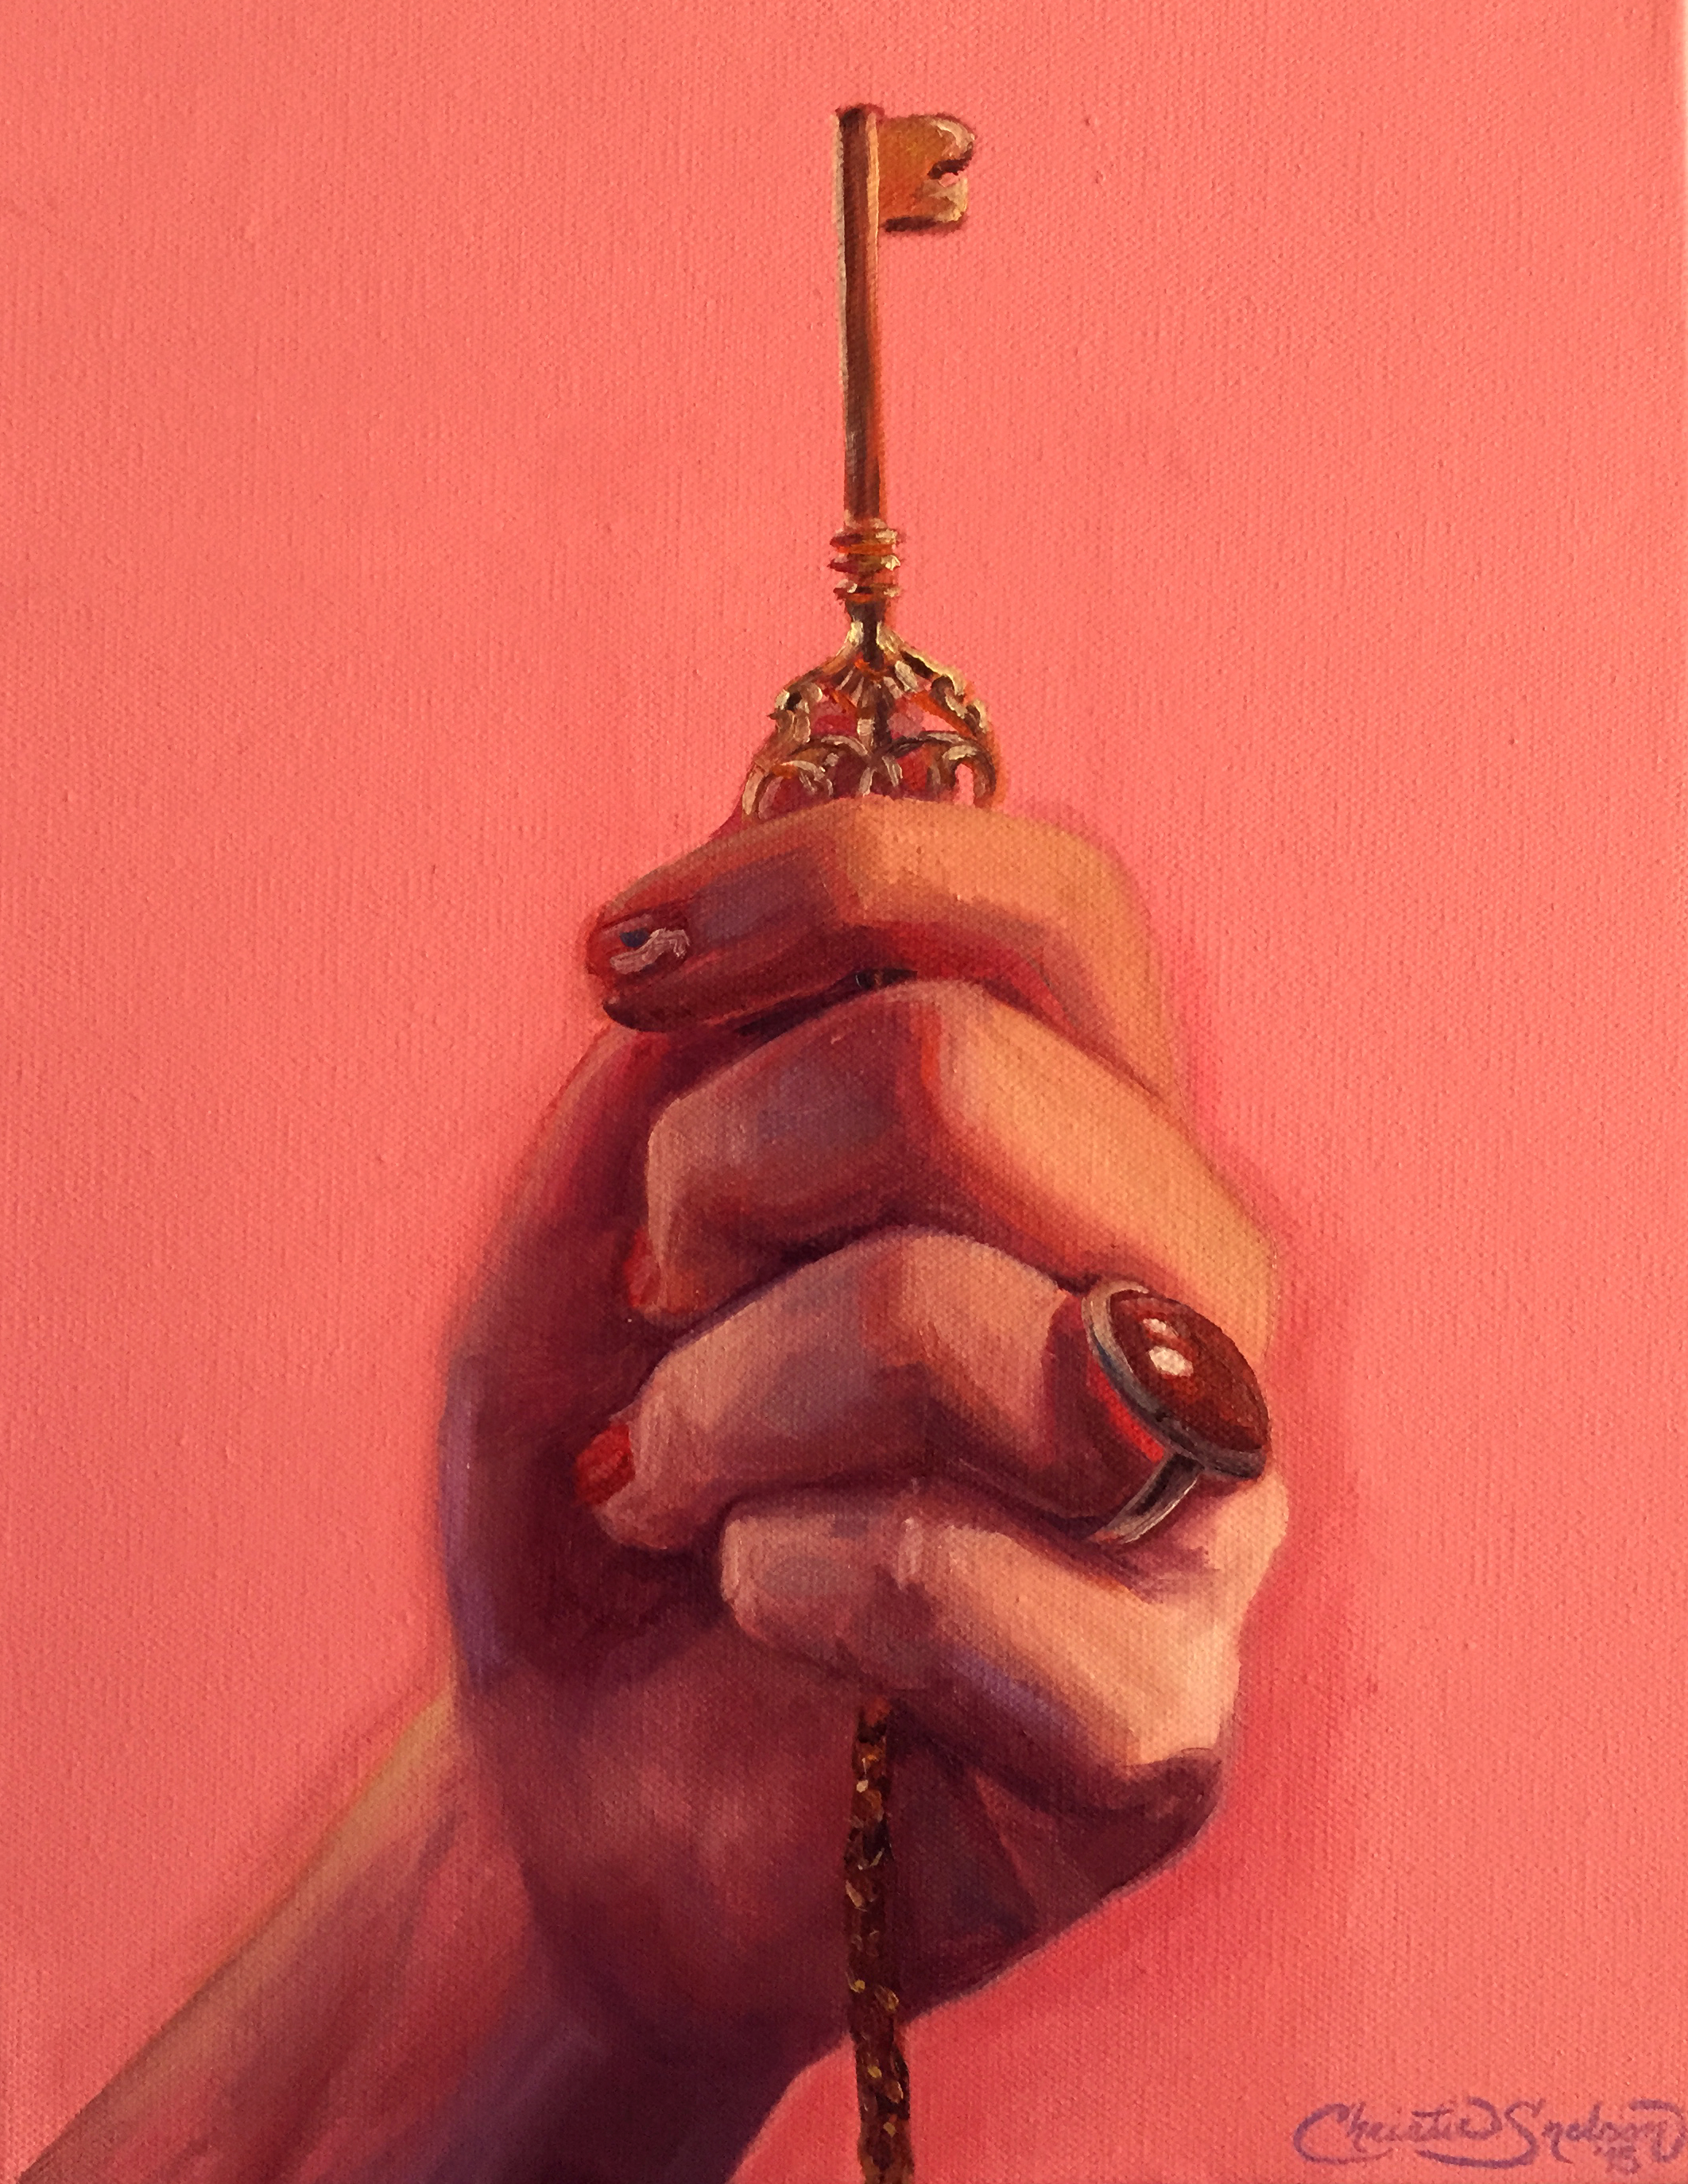 Self Portrait Study_Christie Snelson_A Show of Hands.jpg